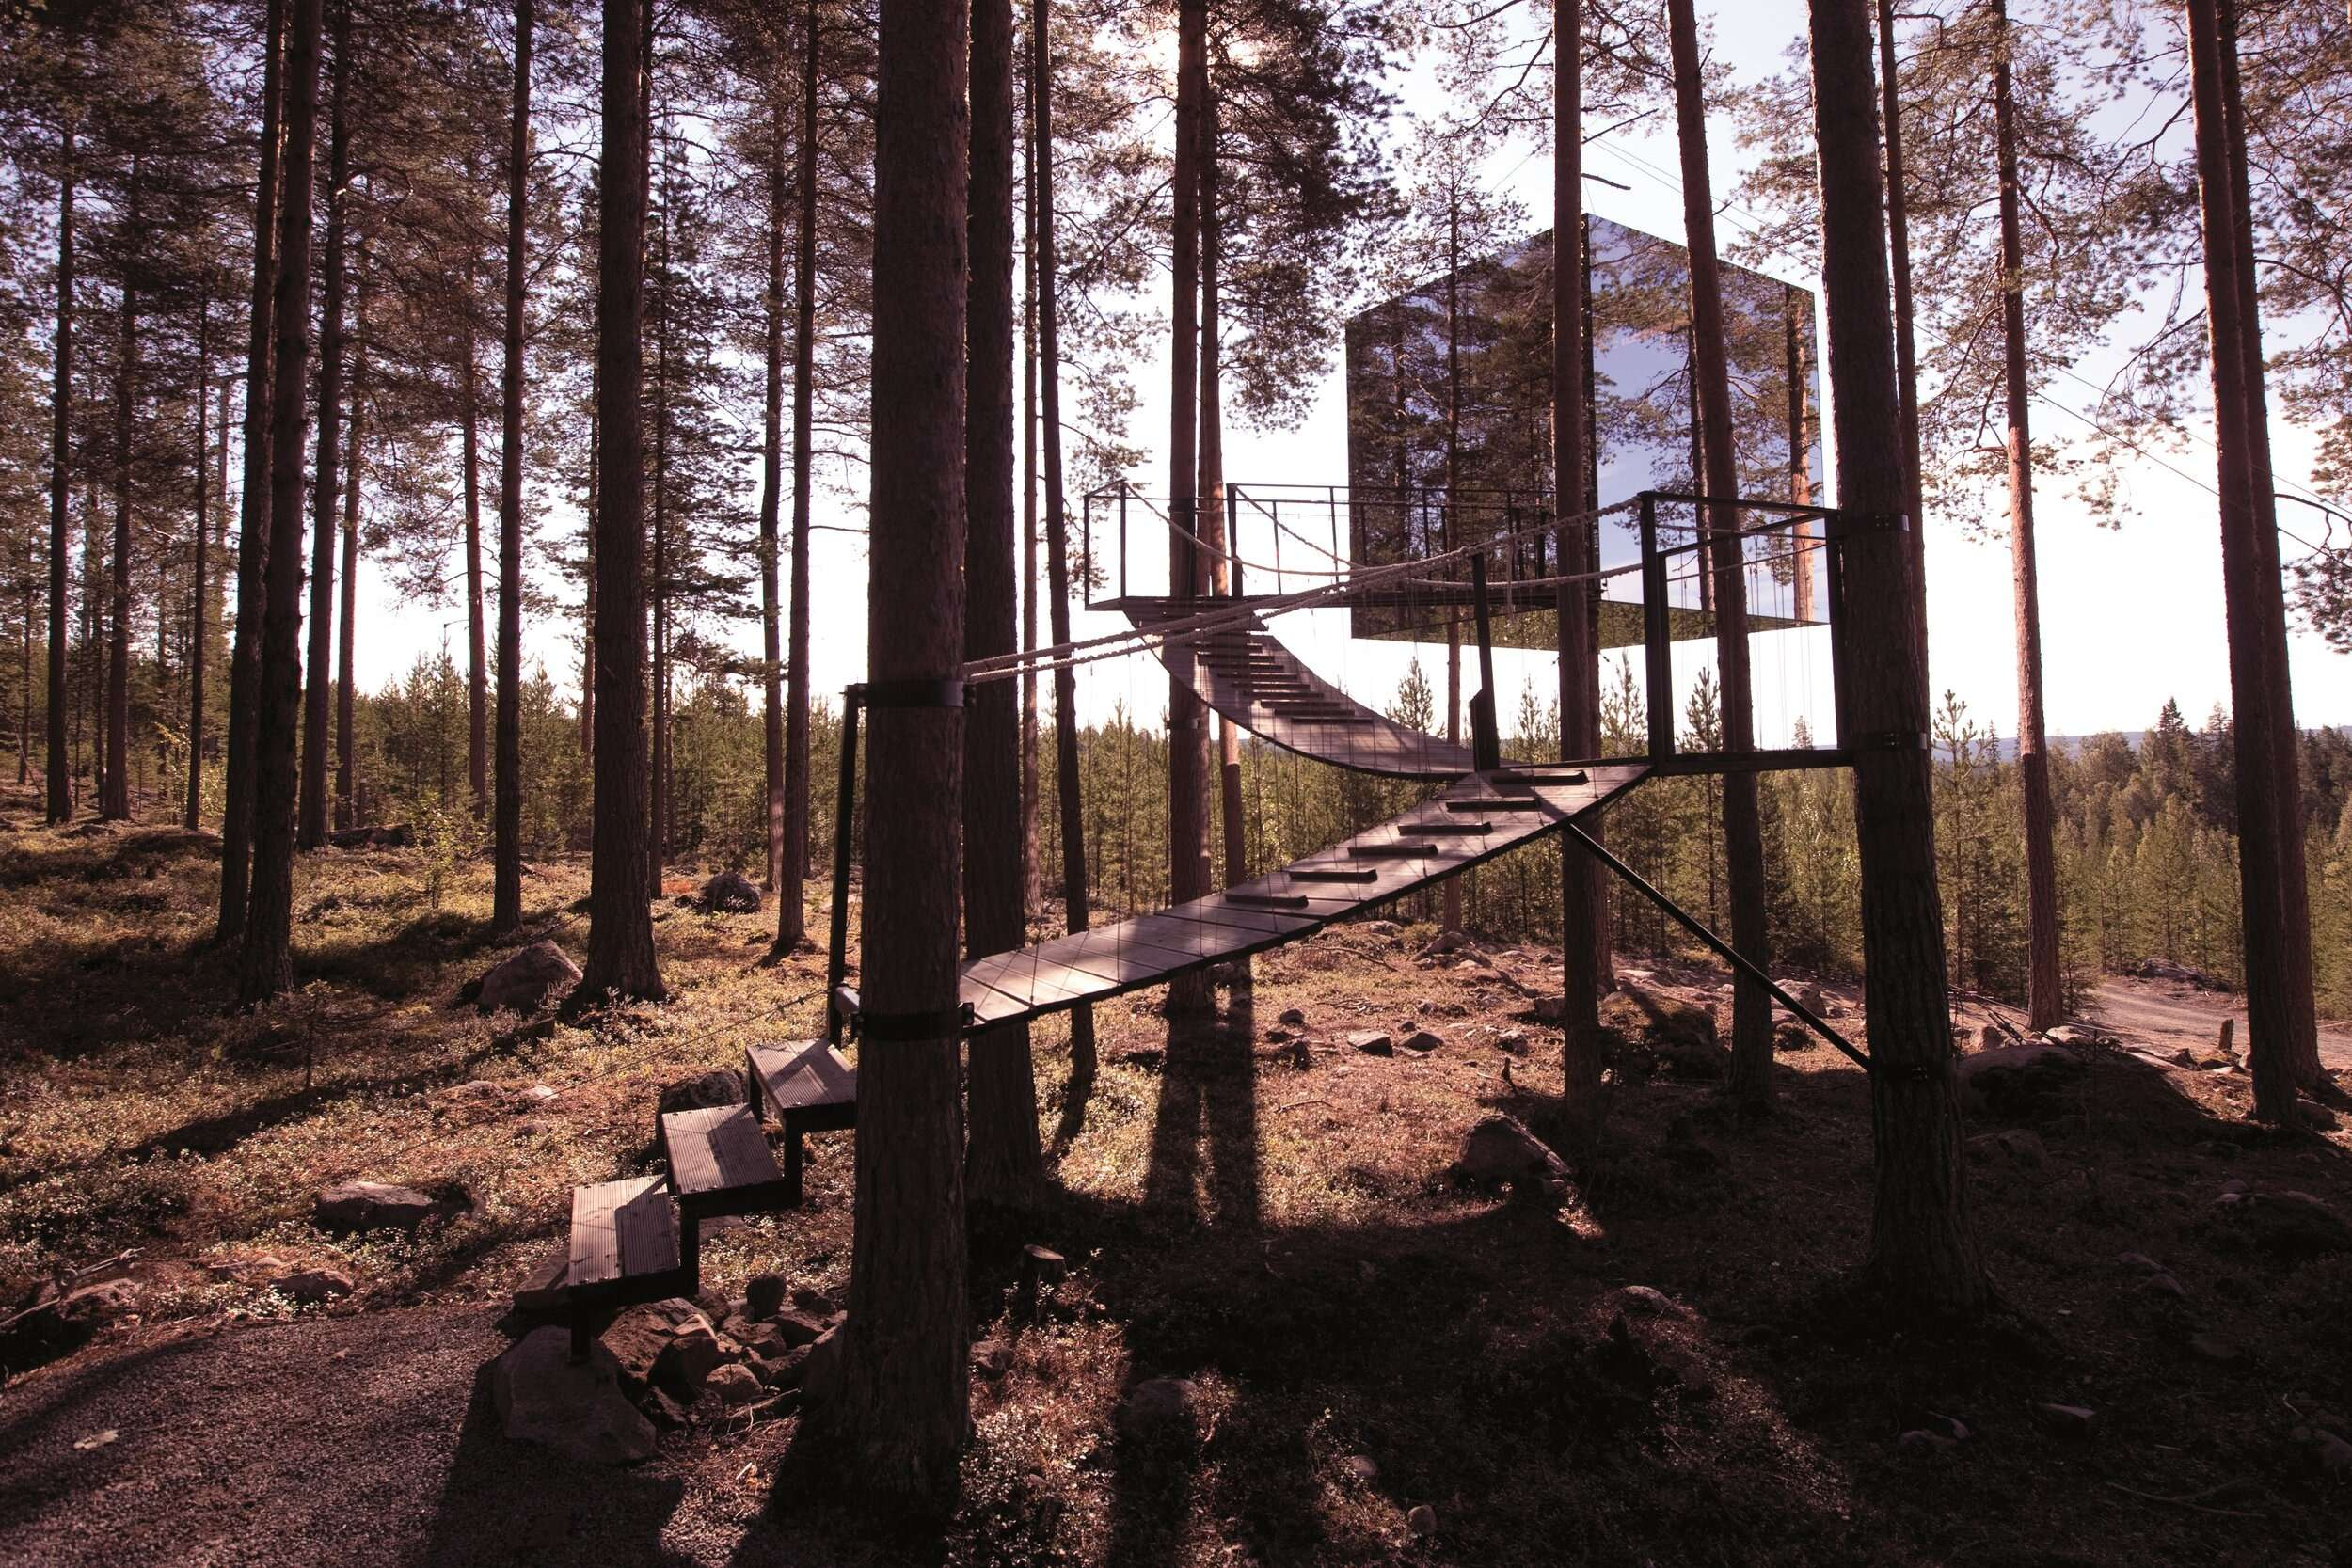 wooden walkway leads up to a mirrored cube suspended in the trees at Treehotel Sweden